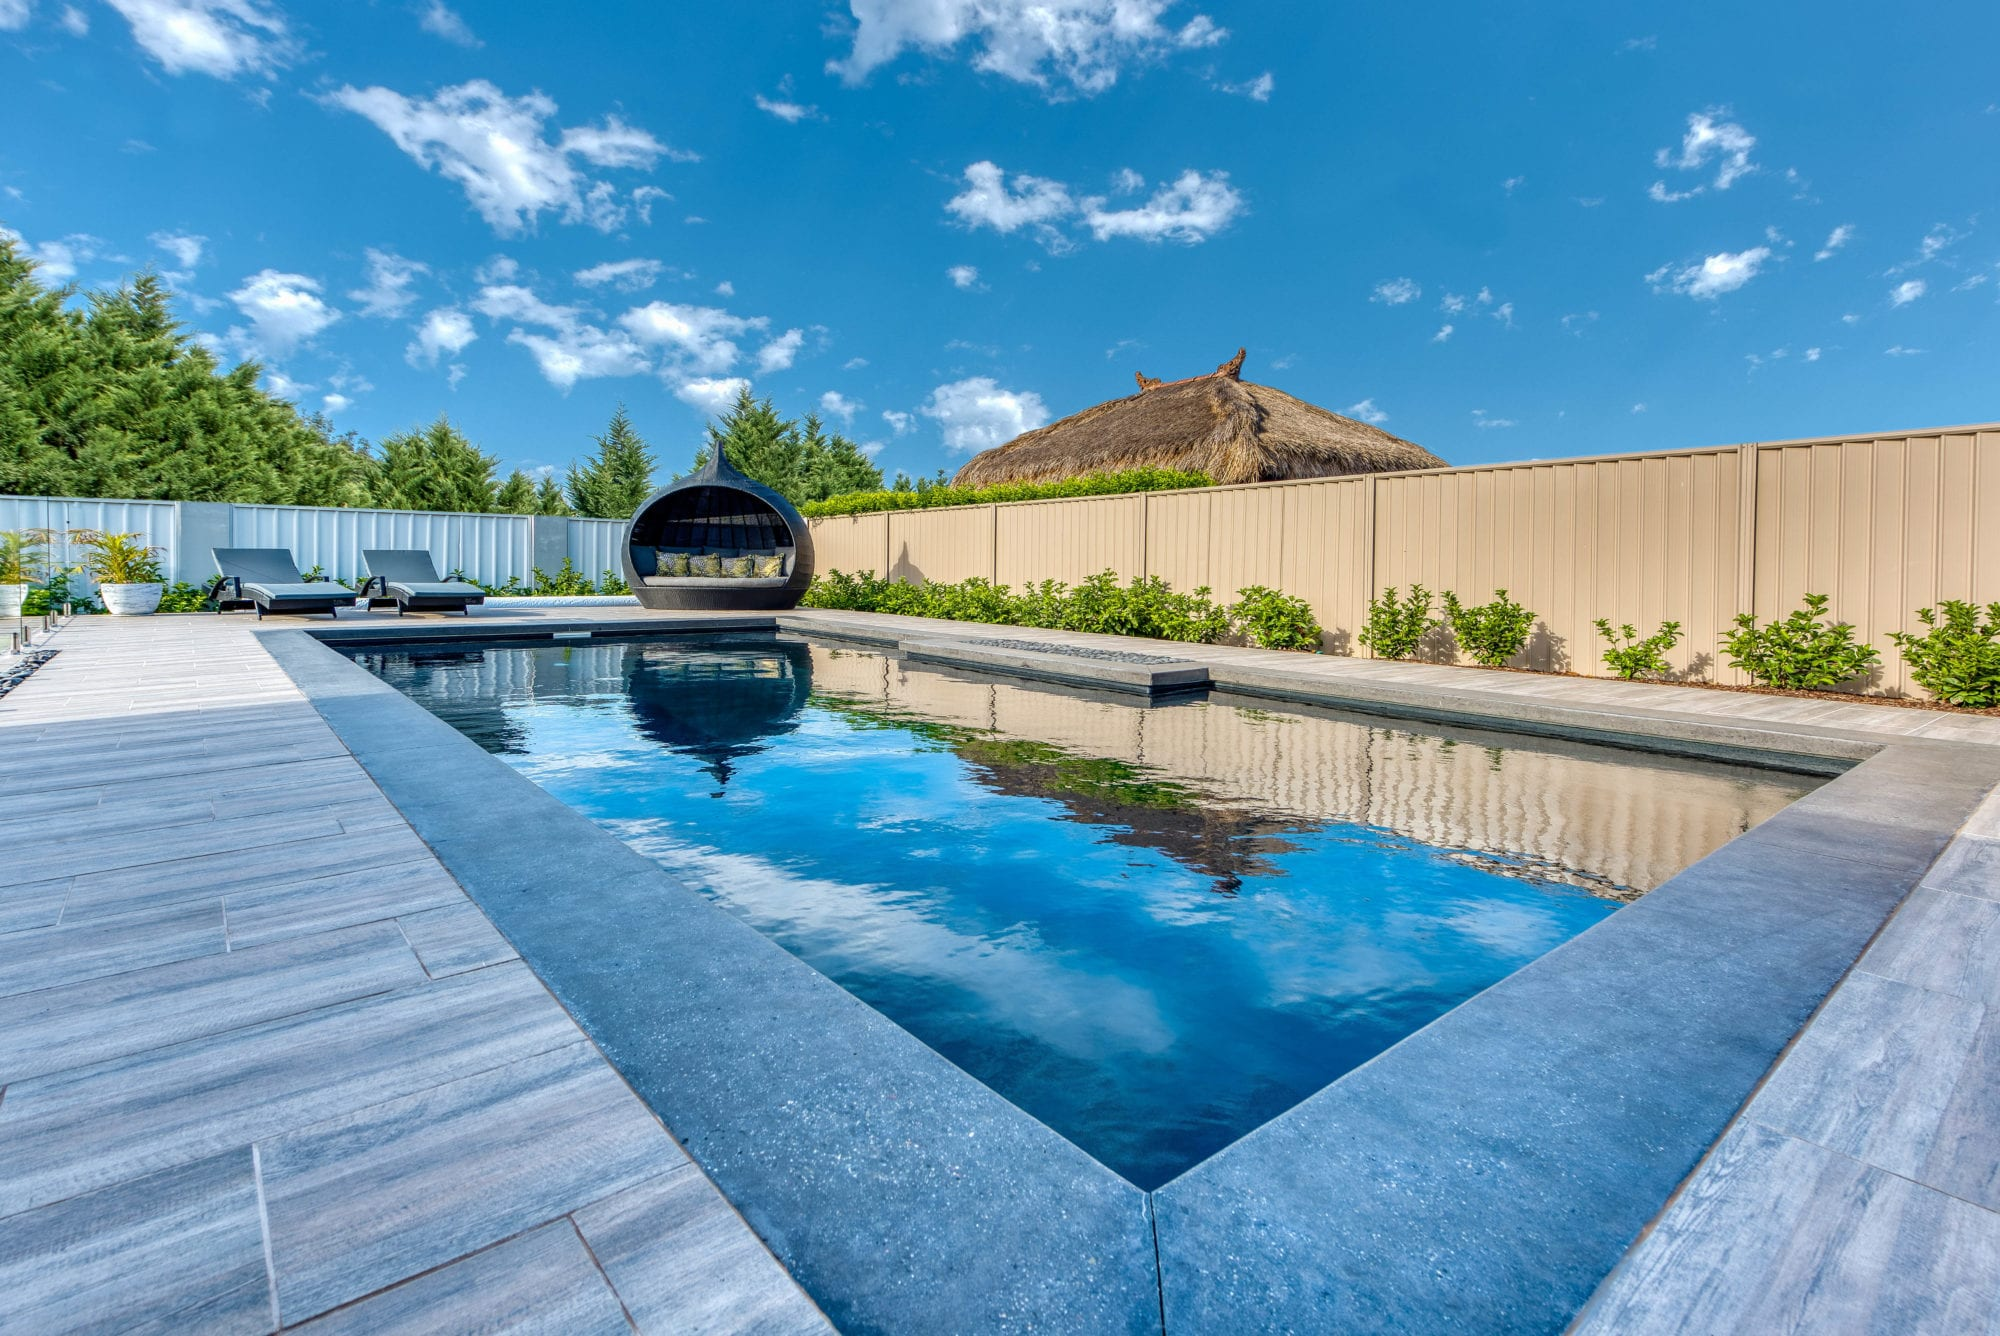 Serenity Pool design by Port Pools by Design